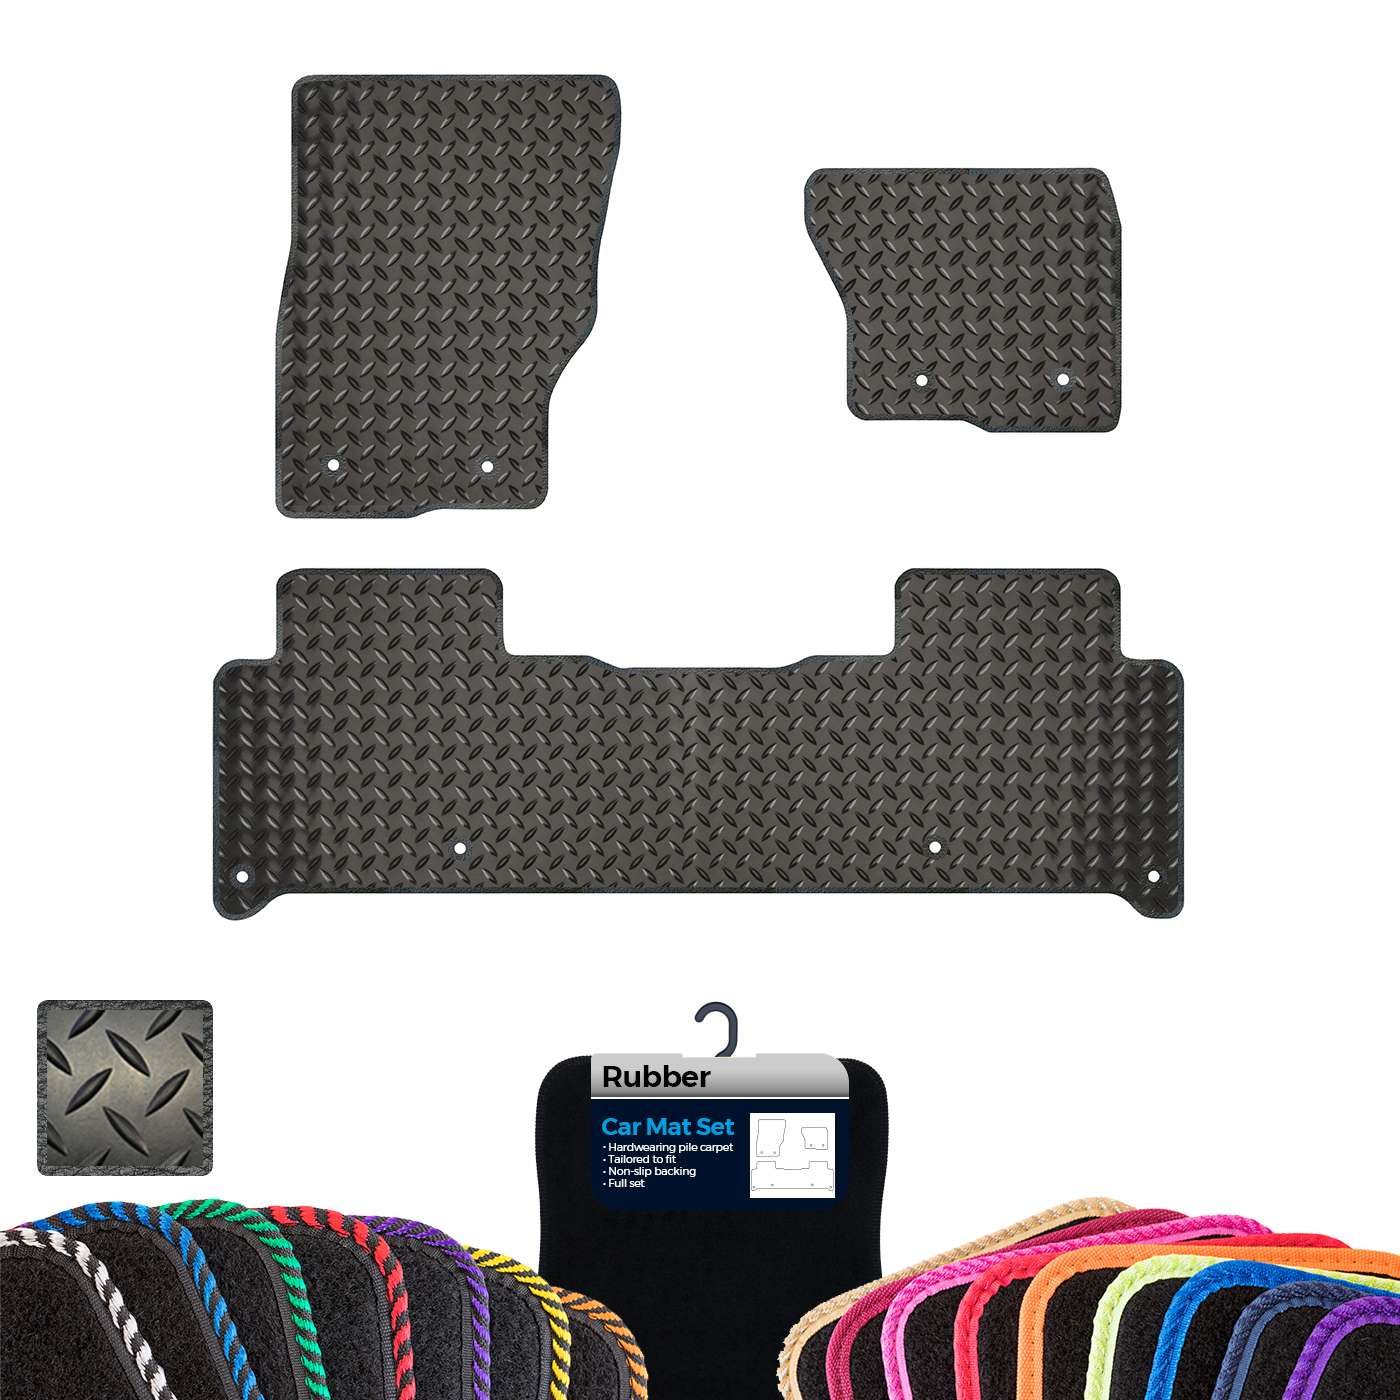 Custom Rubber Car Mats to fit Land Rover Discovery 5 2017 ...